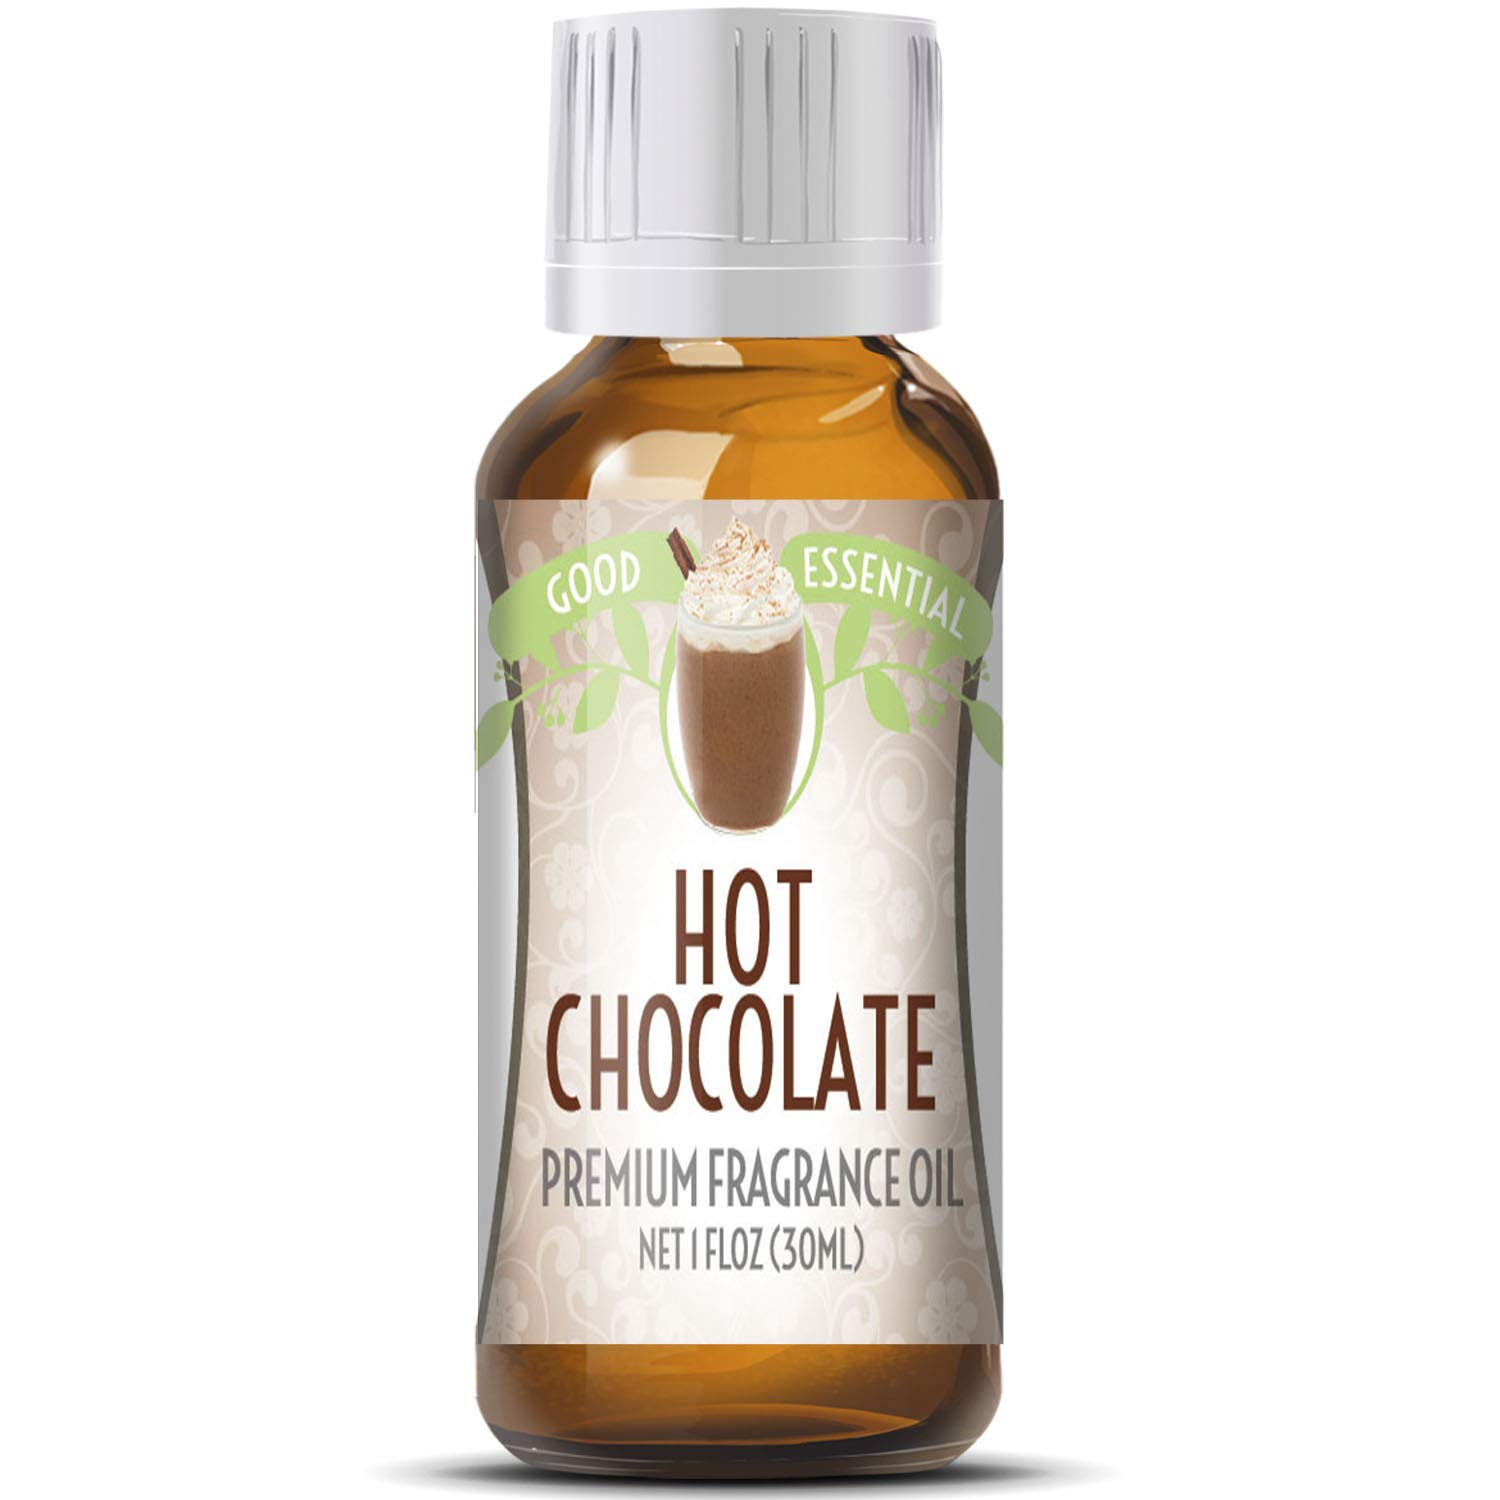 Hot Chocolate Scented Oil by Good Essential (Huge 1oz Bottle - Premium Grade Fragrance Oil) - Perfect for Aromatherapy, Soaps, Candles, Slime, Lotions, and More!